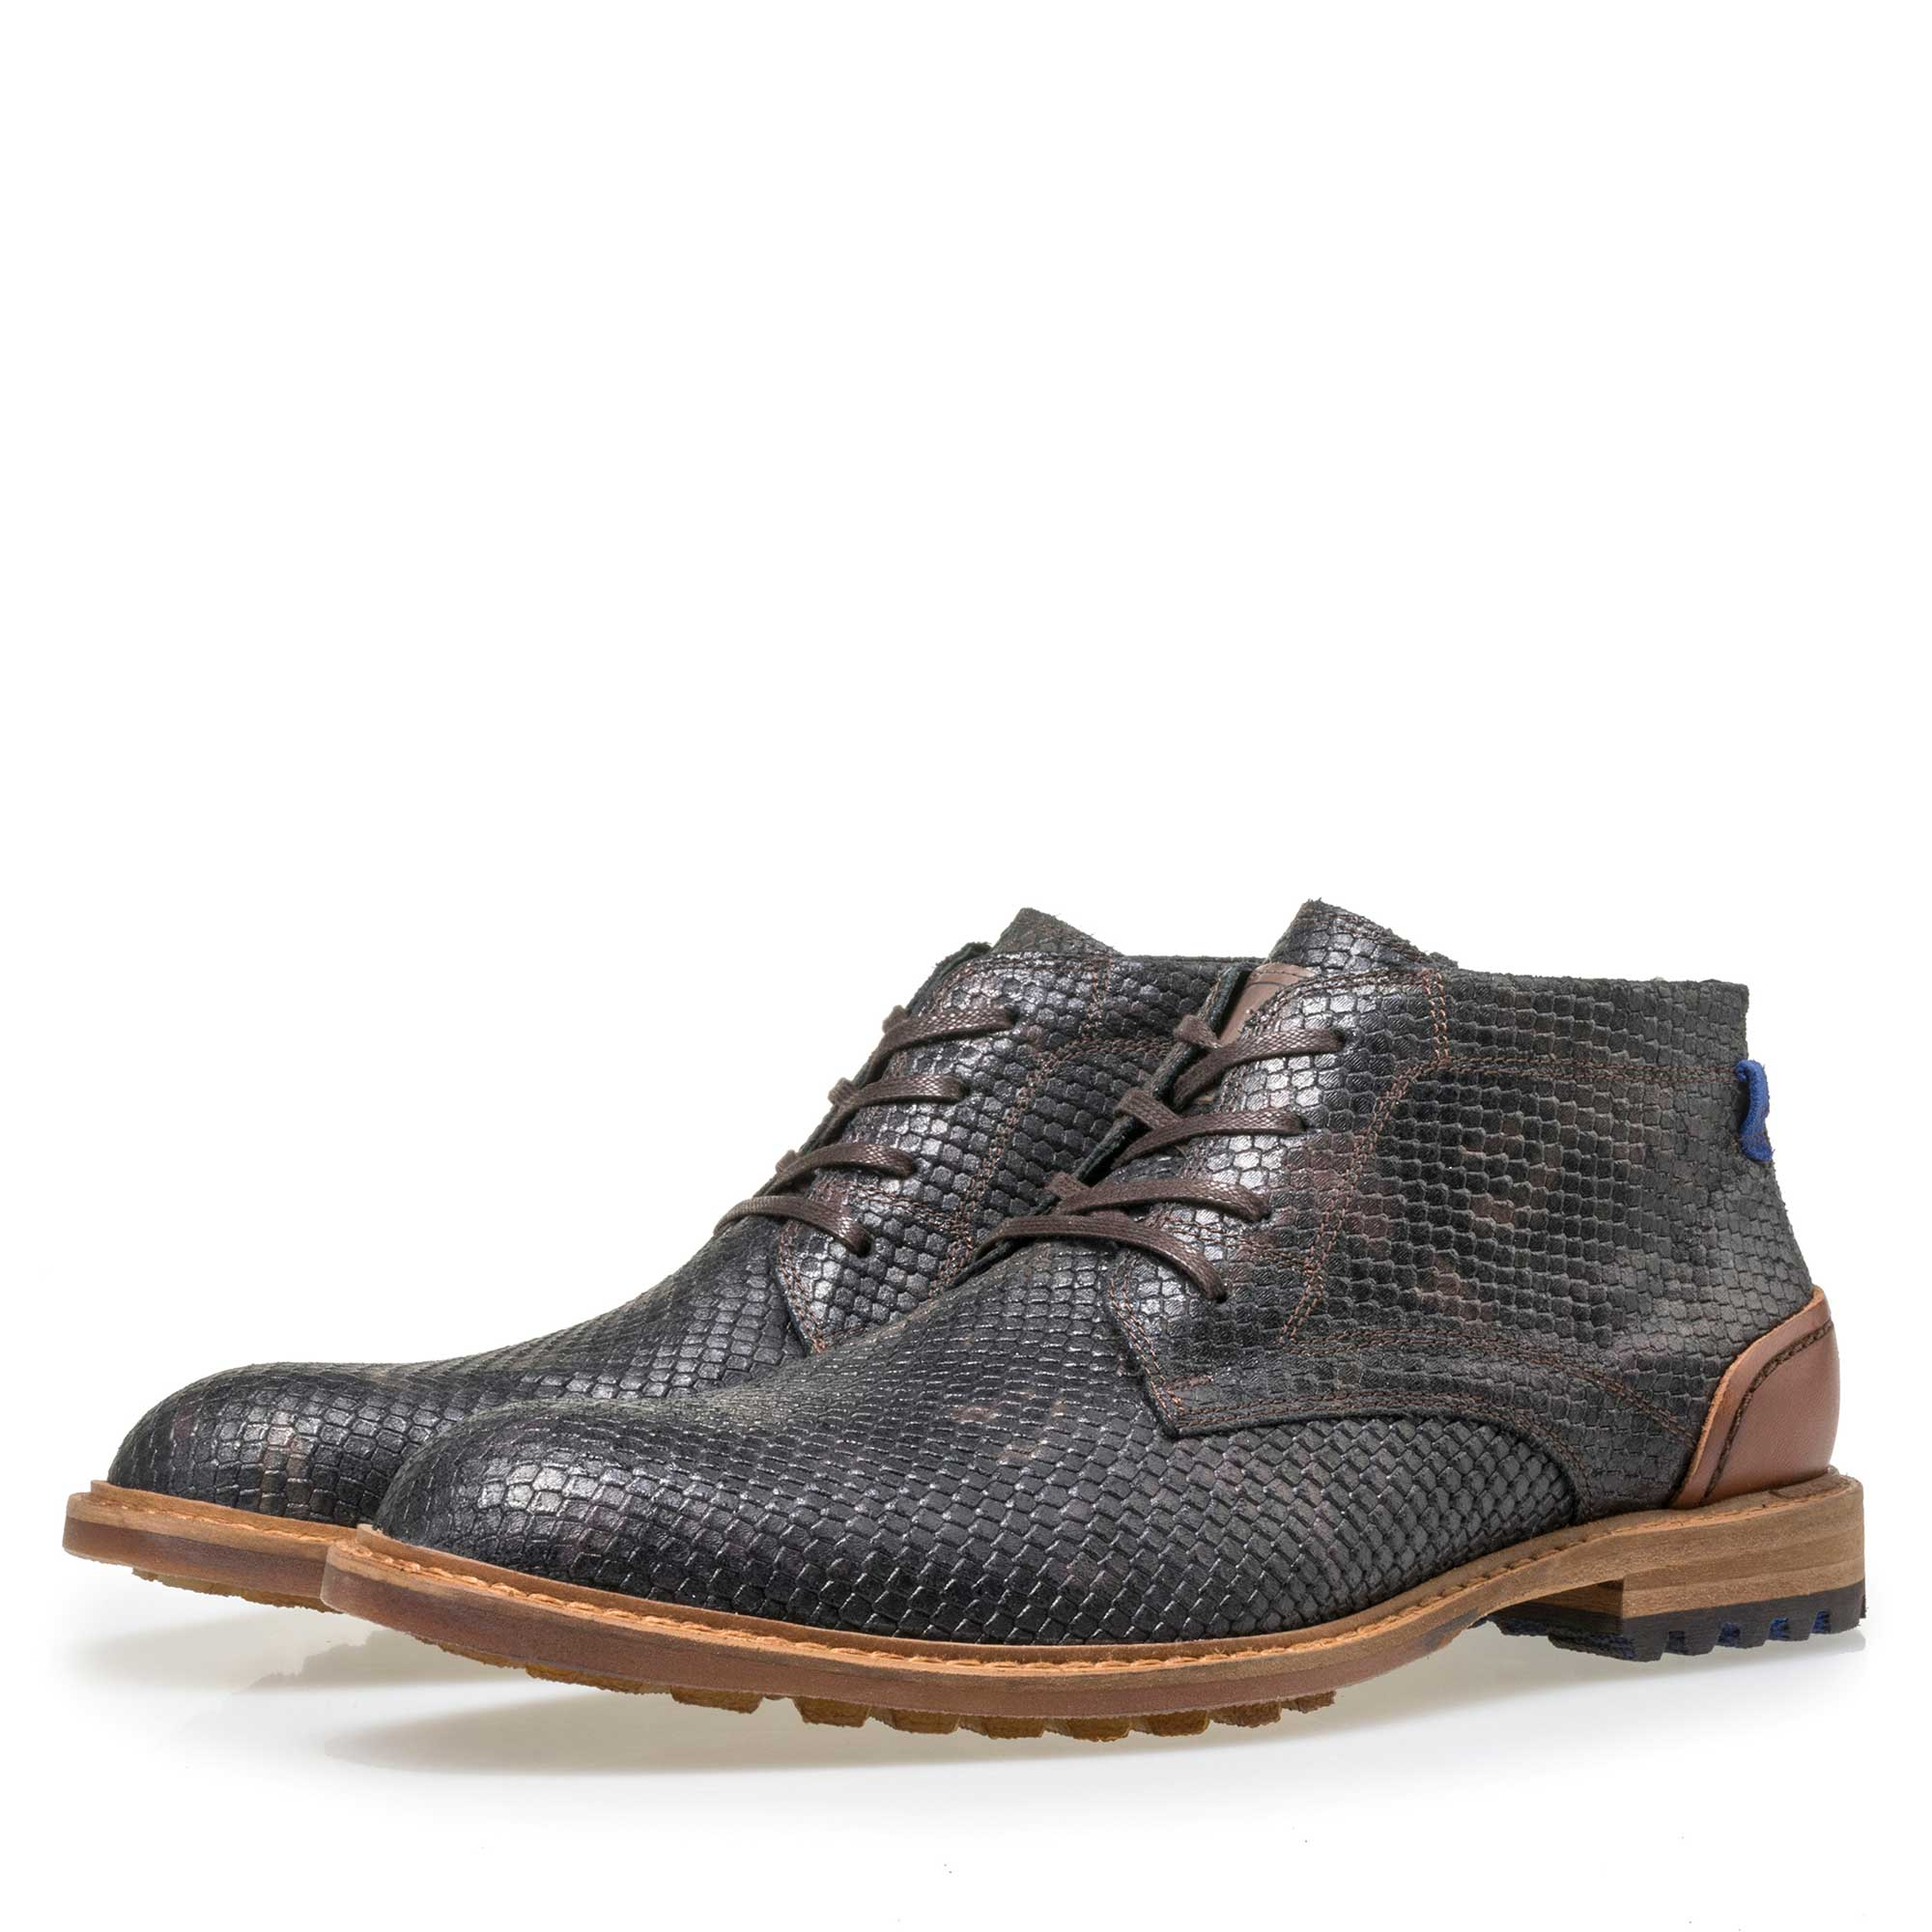 10786/23 - Floris van Bommel men's black leather lace boot finished with a snake print